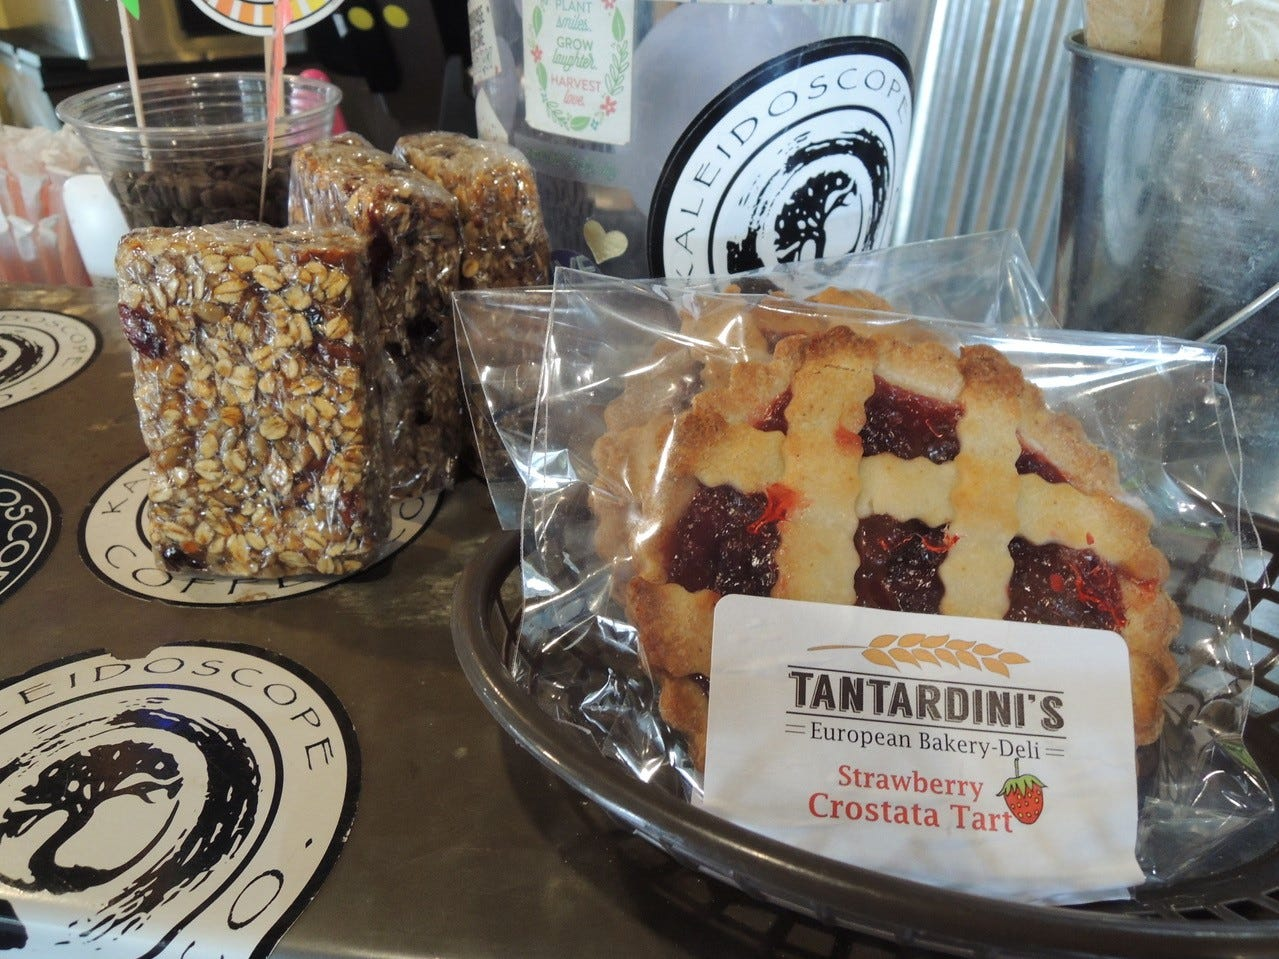 Some of the pastries and house-made health bars at Kaleidoscope Coffee on Athens Avenue.